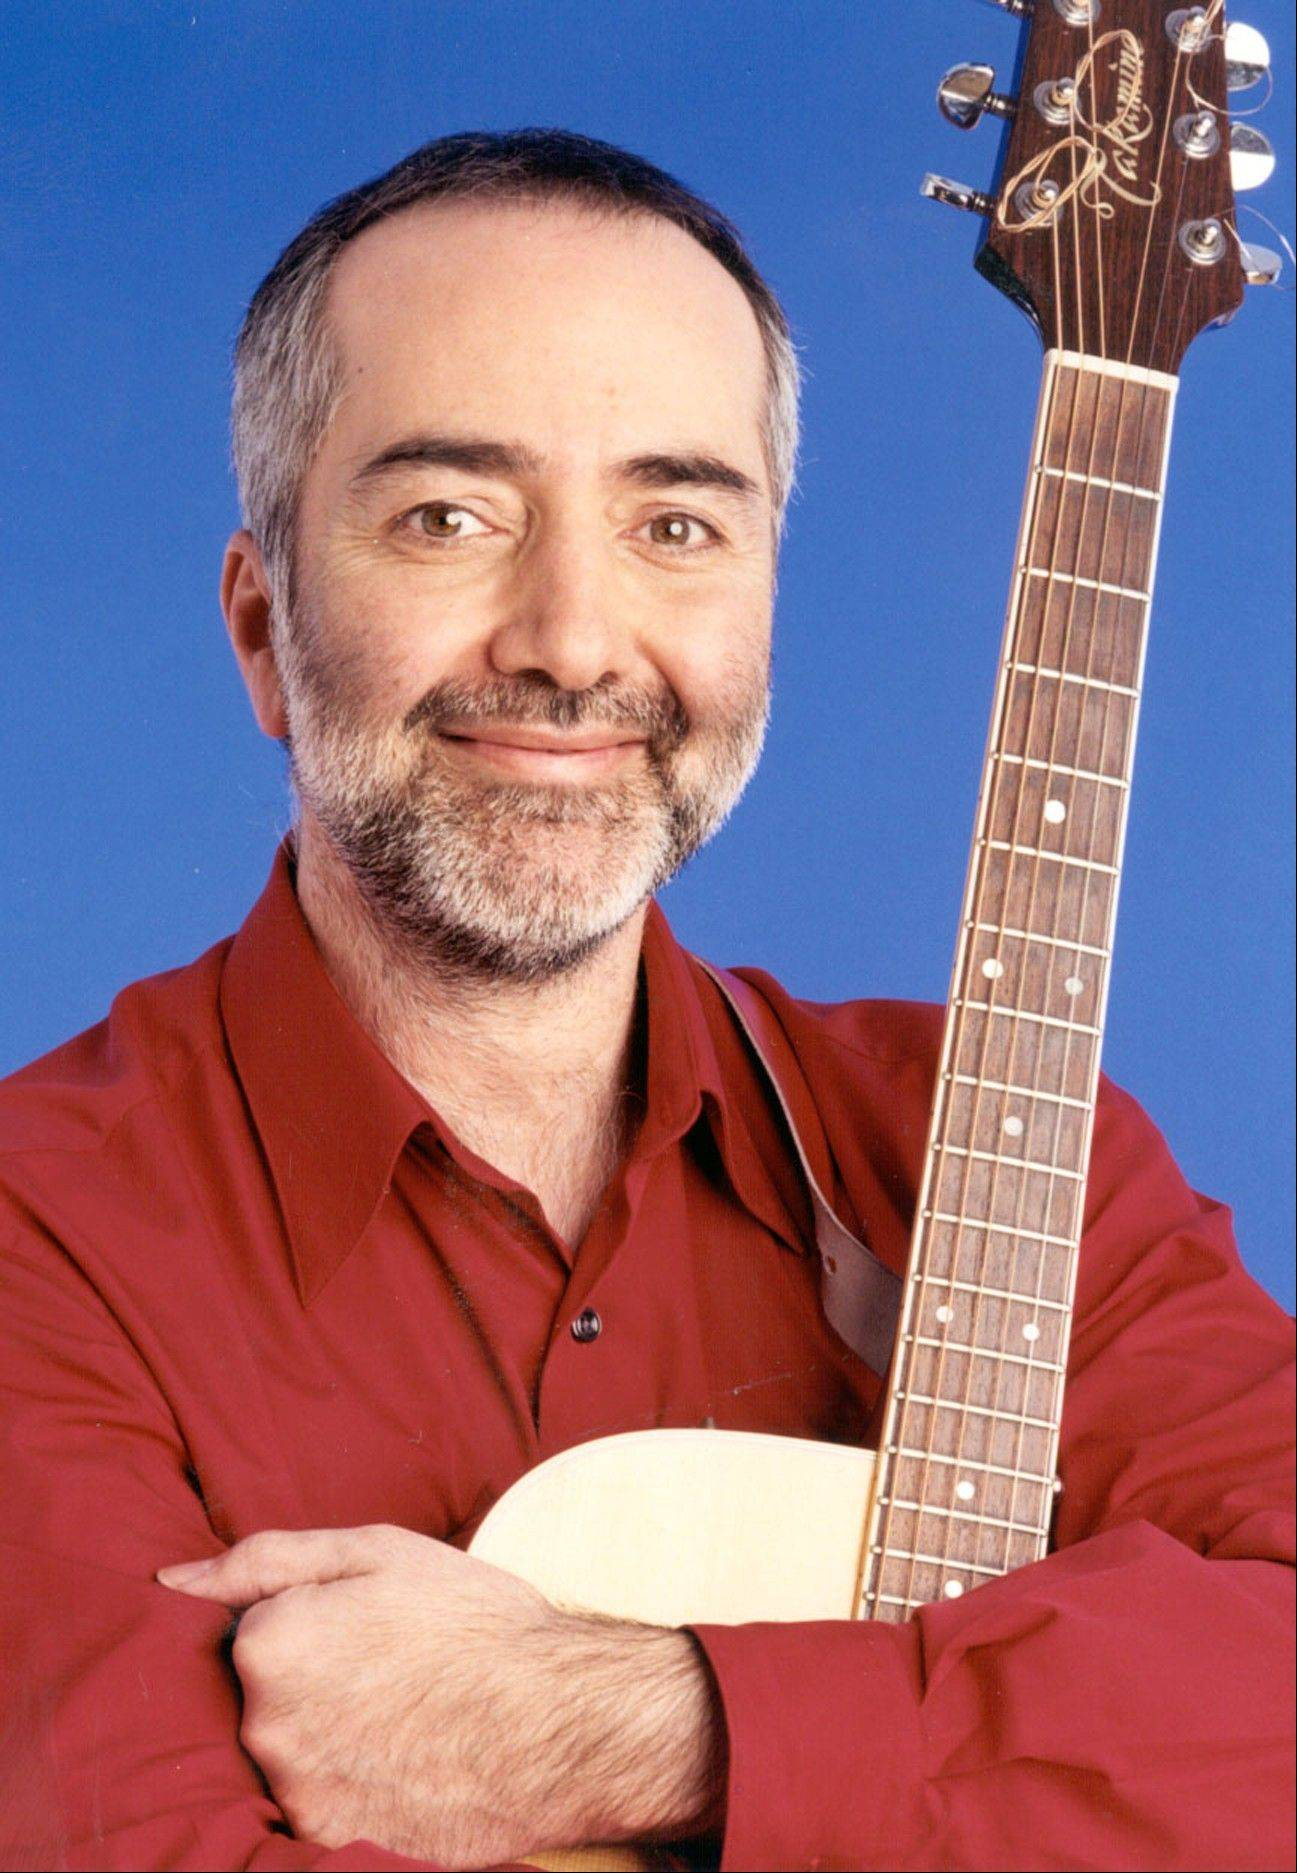 Children's entertainer Raffi will headline the Paramount Theatre in Aurora at 1 p.m. Sunday, May 19.